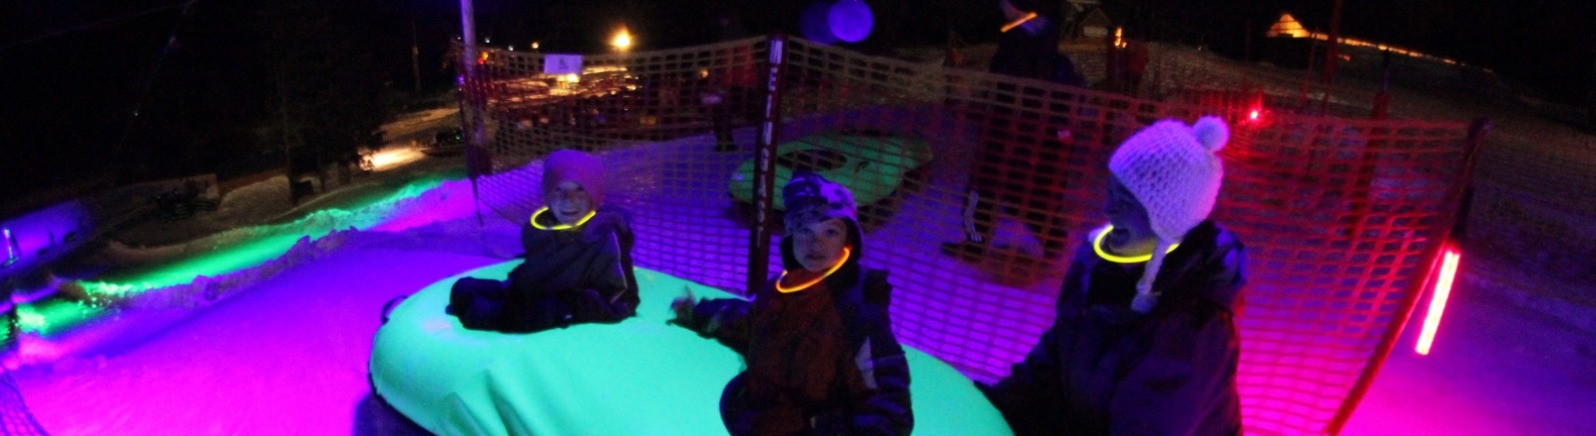 Two snow tubers with glow in dark necklace wait at top of Cosmic Tubing run in 2-man turquoise tube beneath neon lights